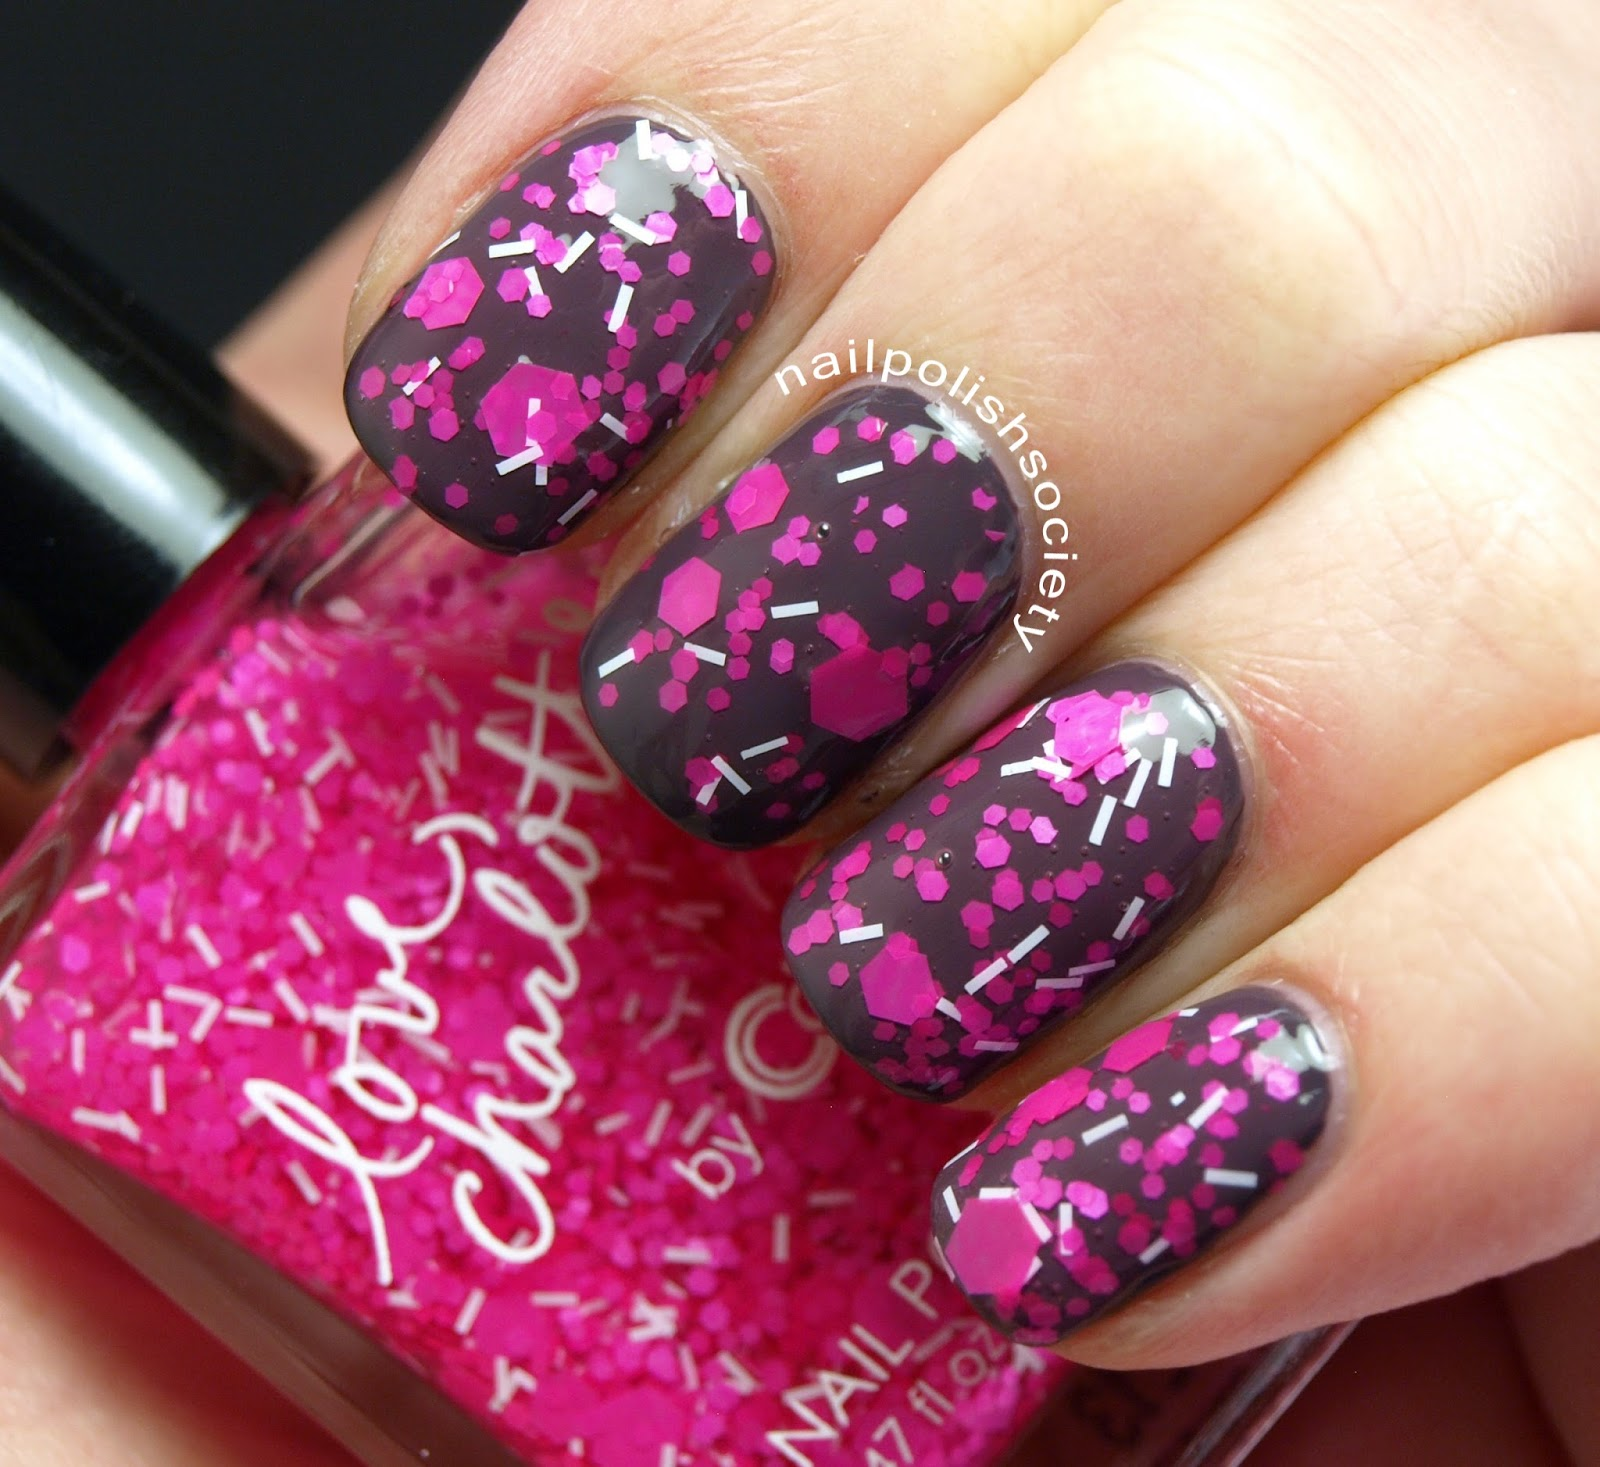 Nail Polish Society Love Charlotte Xo By Color Club From Charlotte Russe Swatches And Review